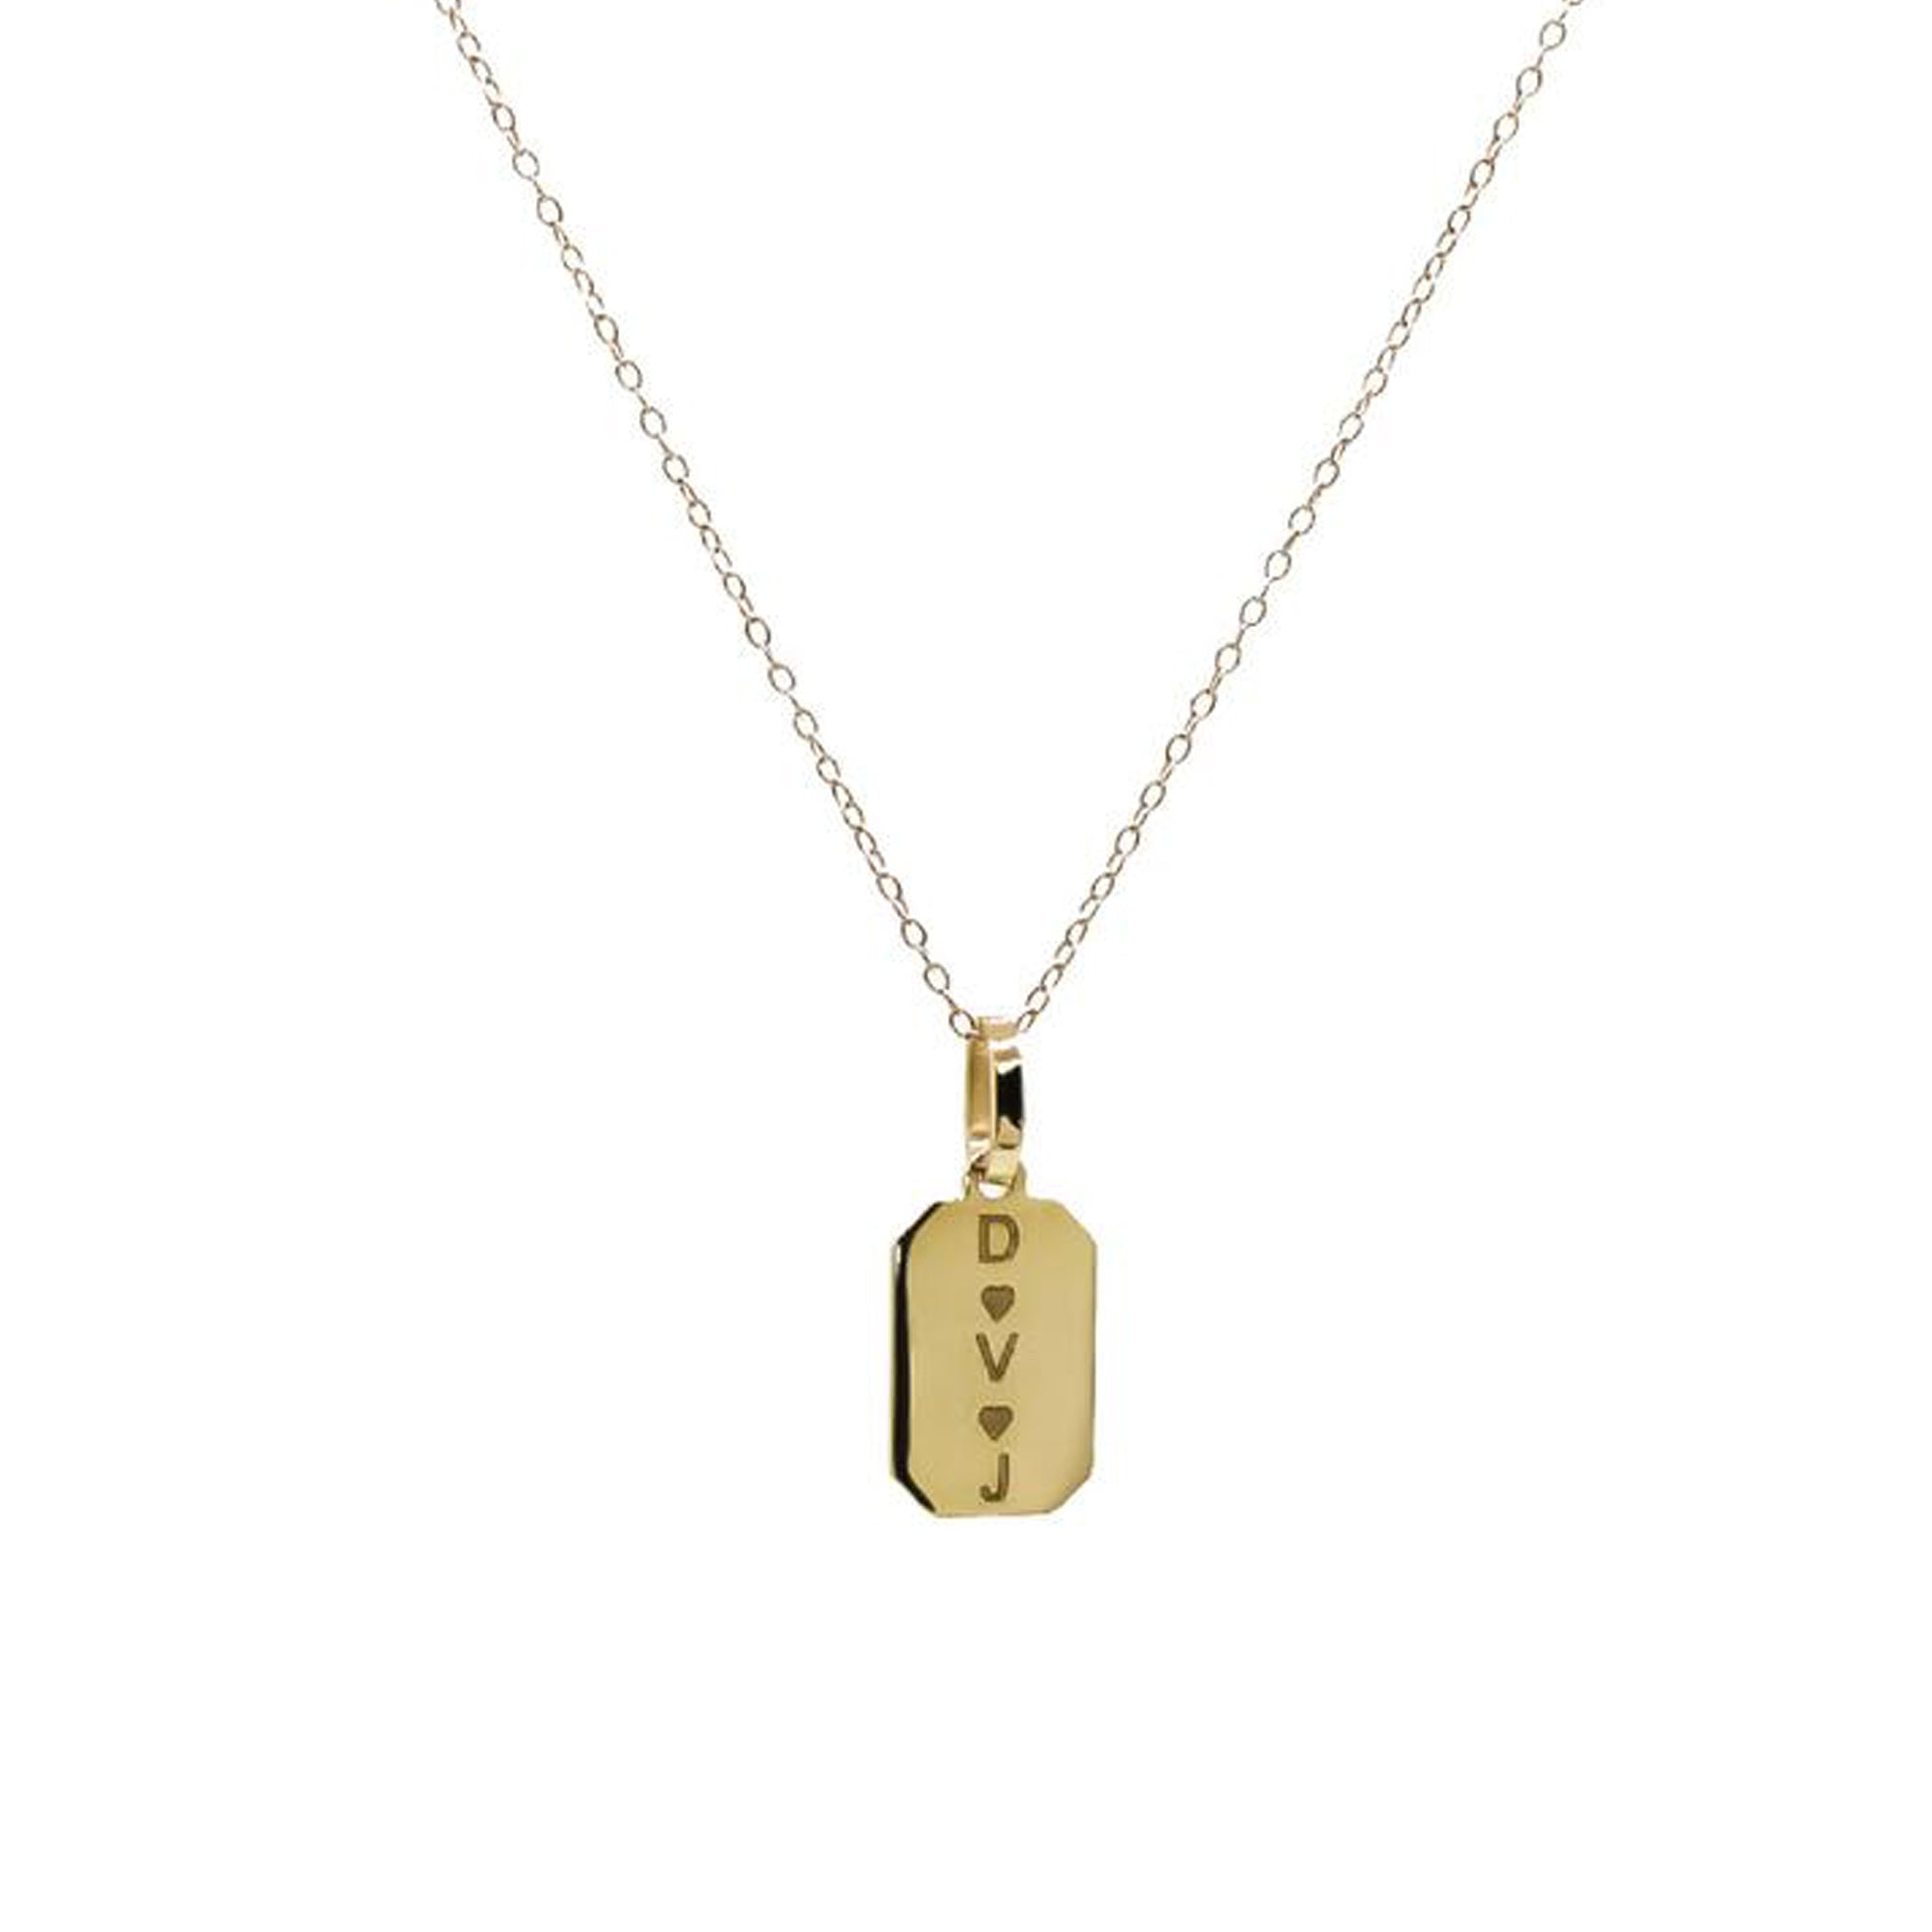 10K Gold Mini Dog Tag Necklace